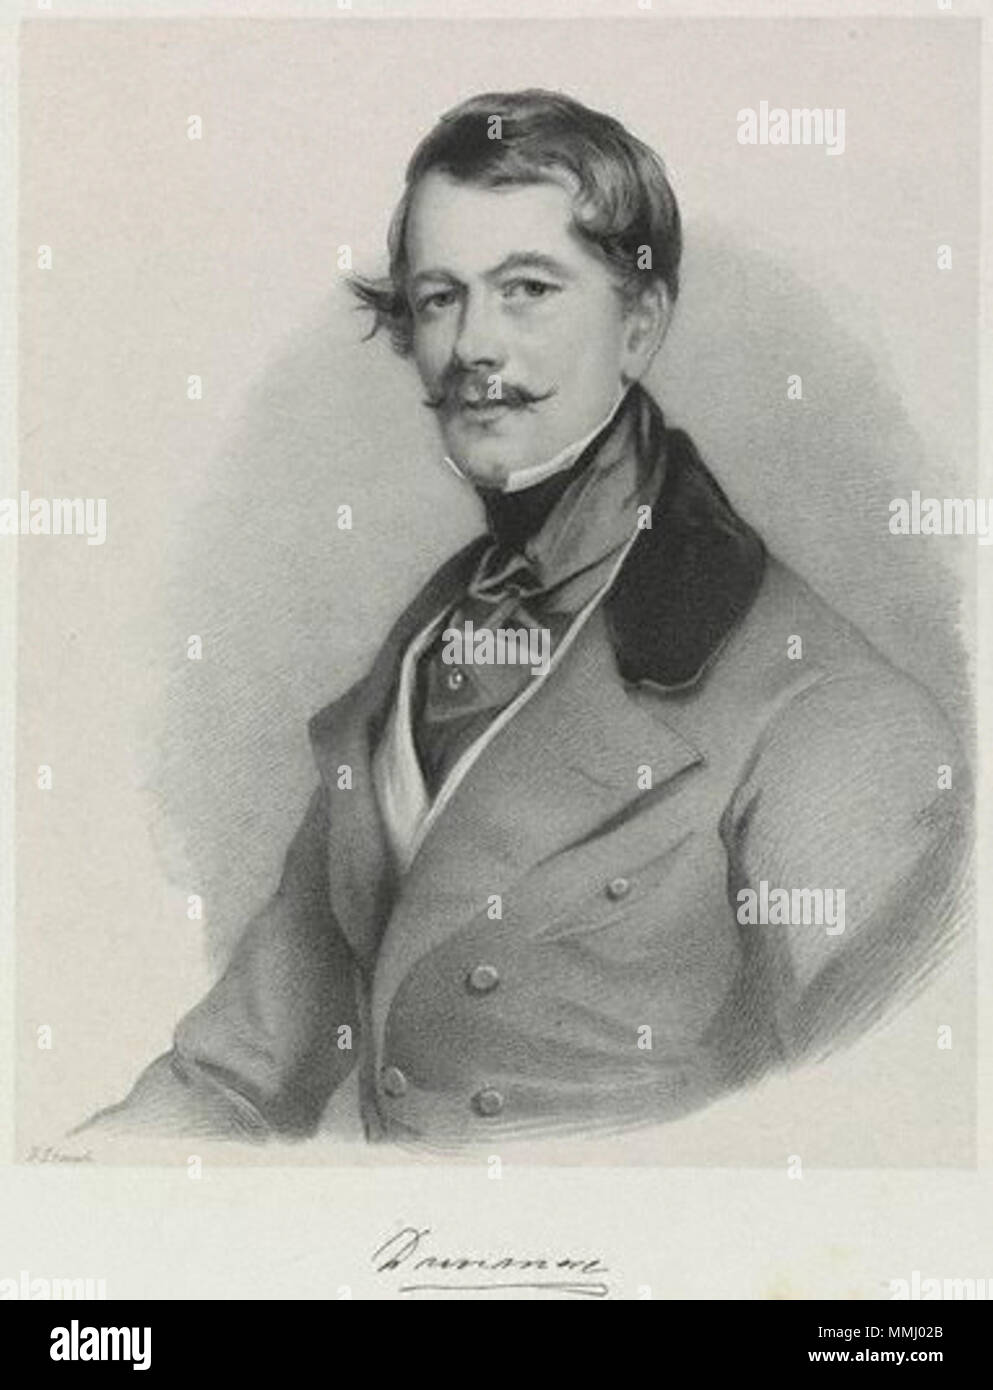 . English: Alexander Murray, 6th Earl of Dunmore (1804-1845)  by; after Richard James Lane; Sir Francis Grant,print,1846 6th Earl of Dunmore - Stock Image